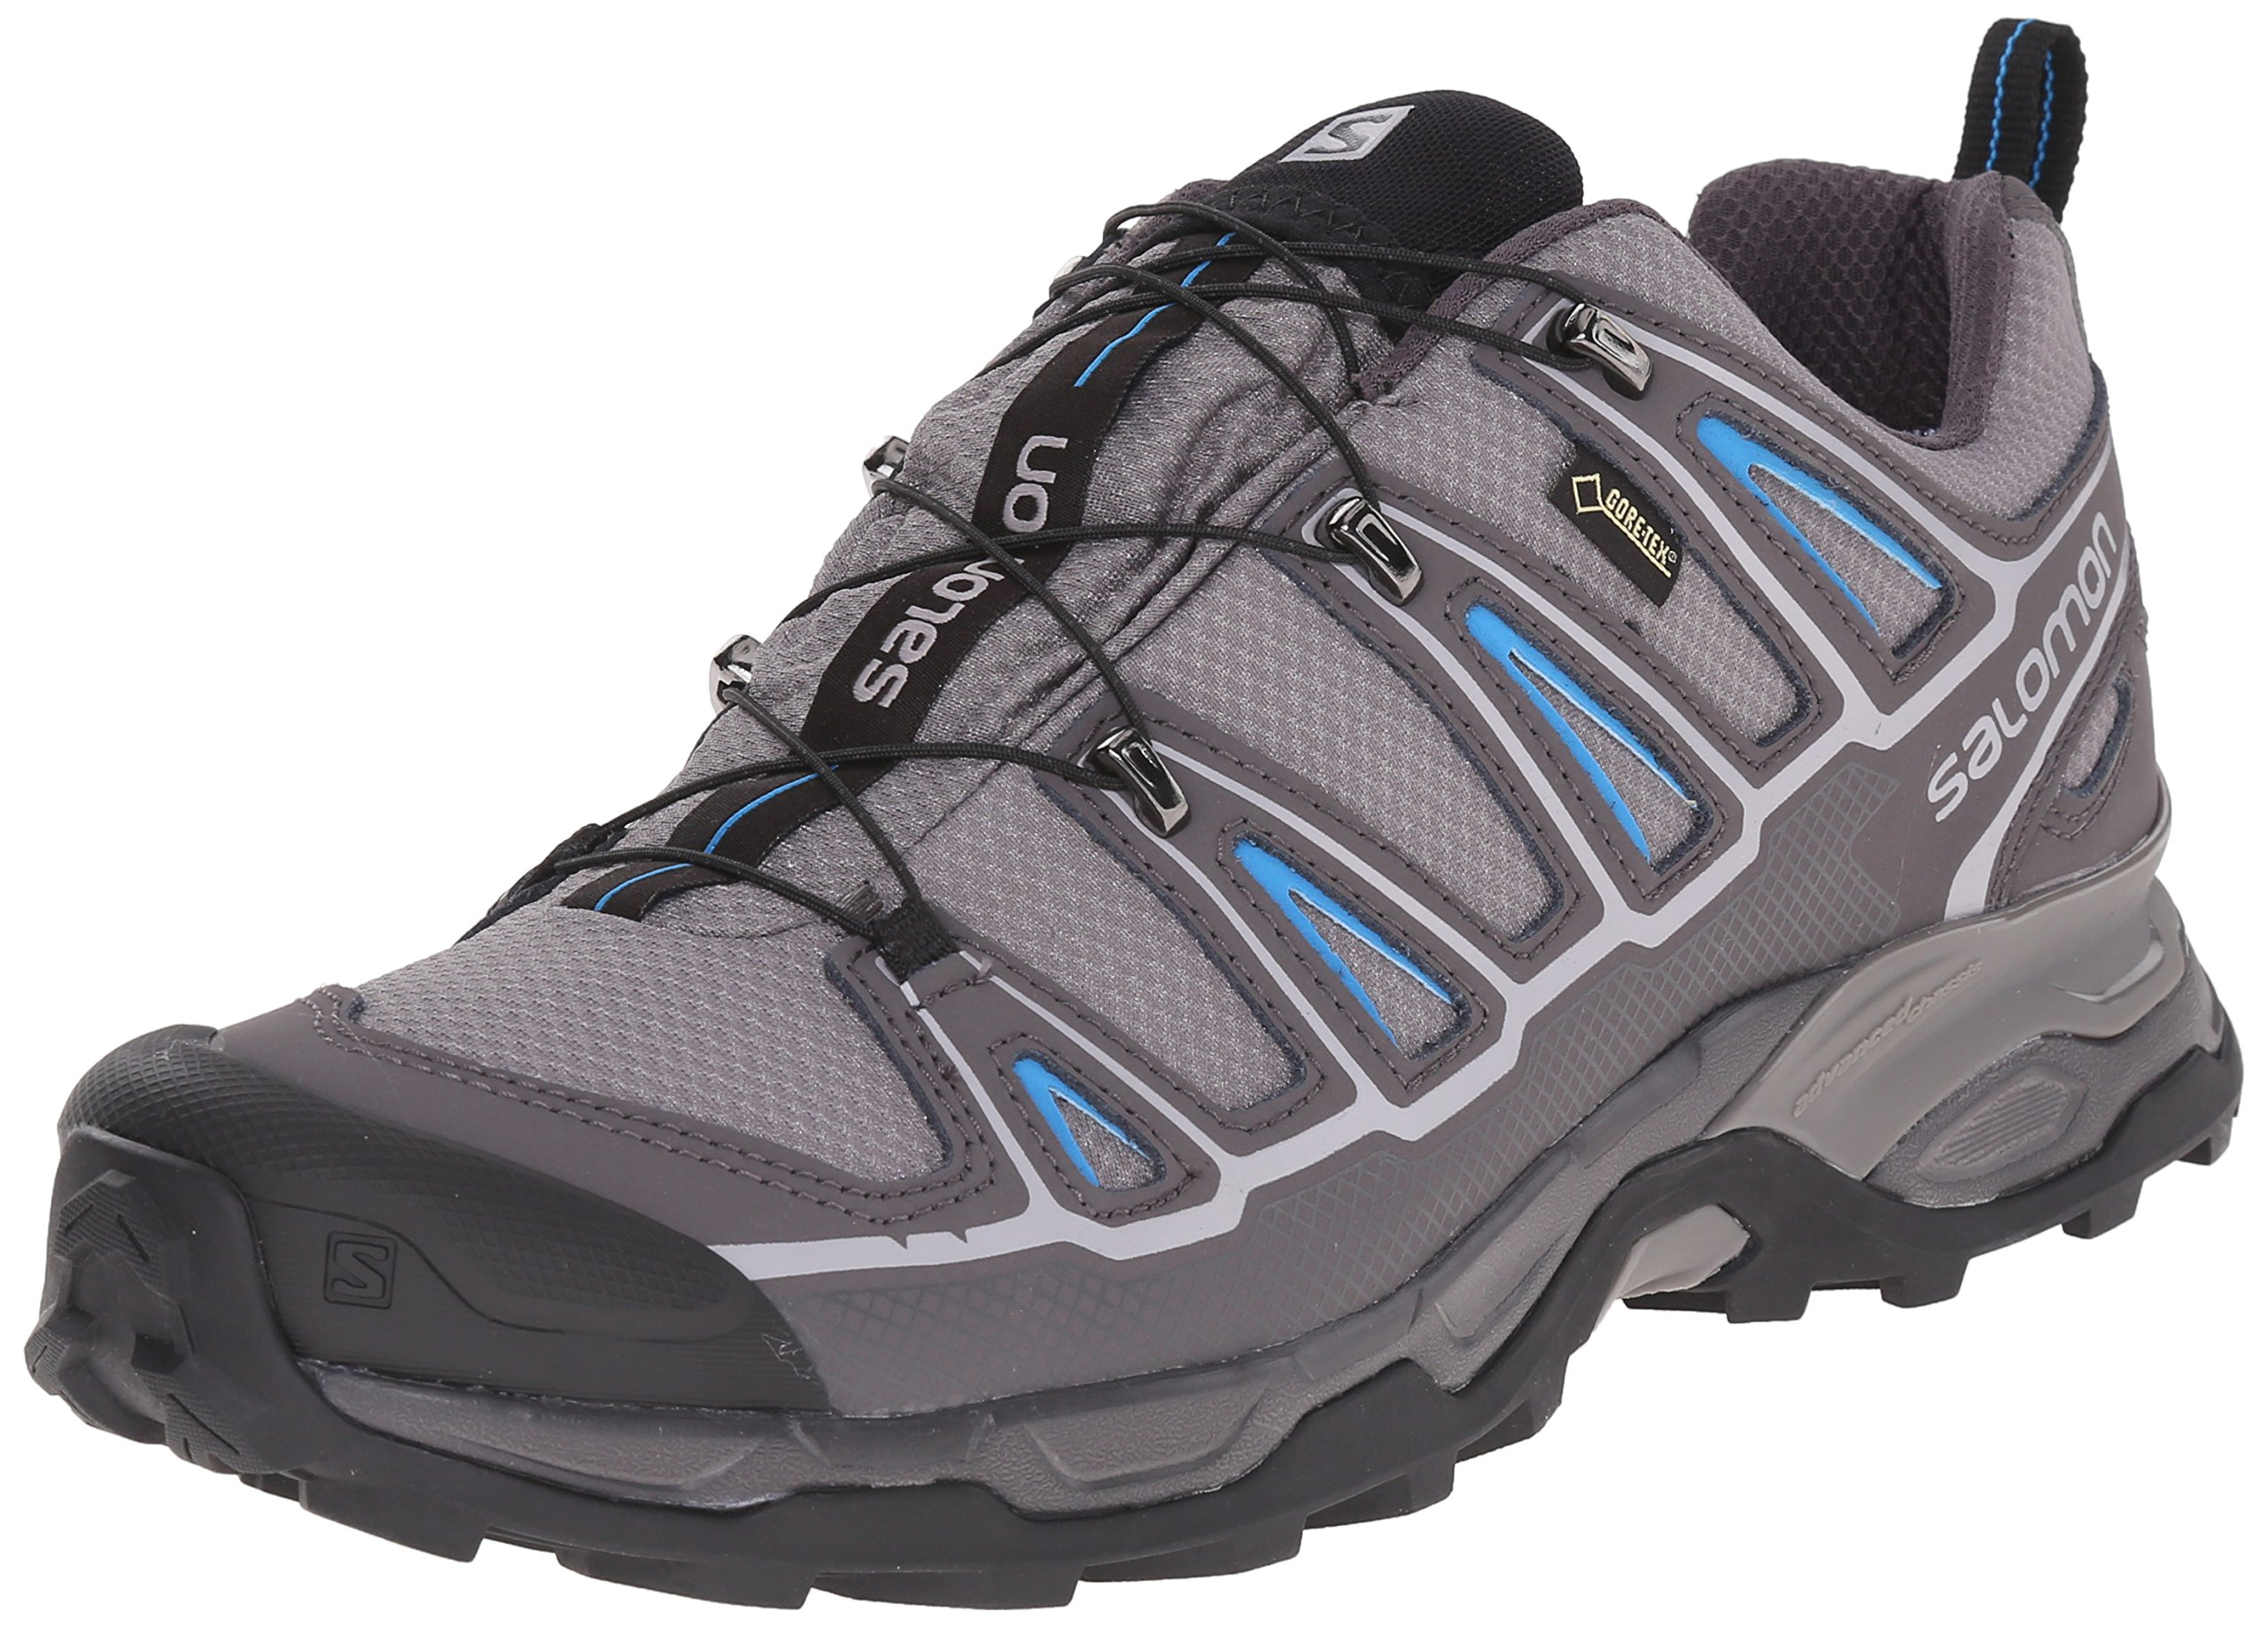 c9fcf1f29223 Salomon Men s X Ultra 2 GTX-M